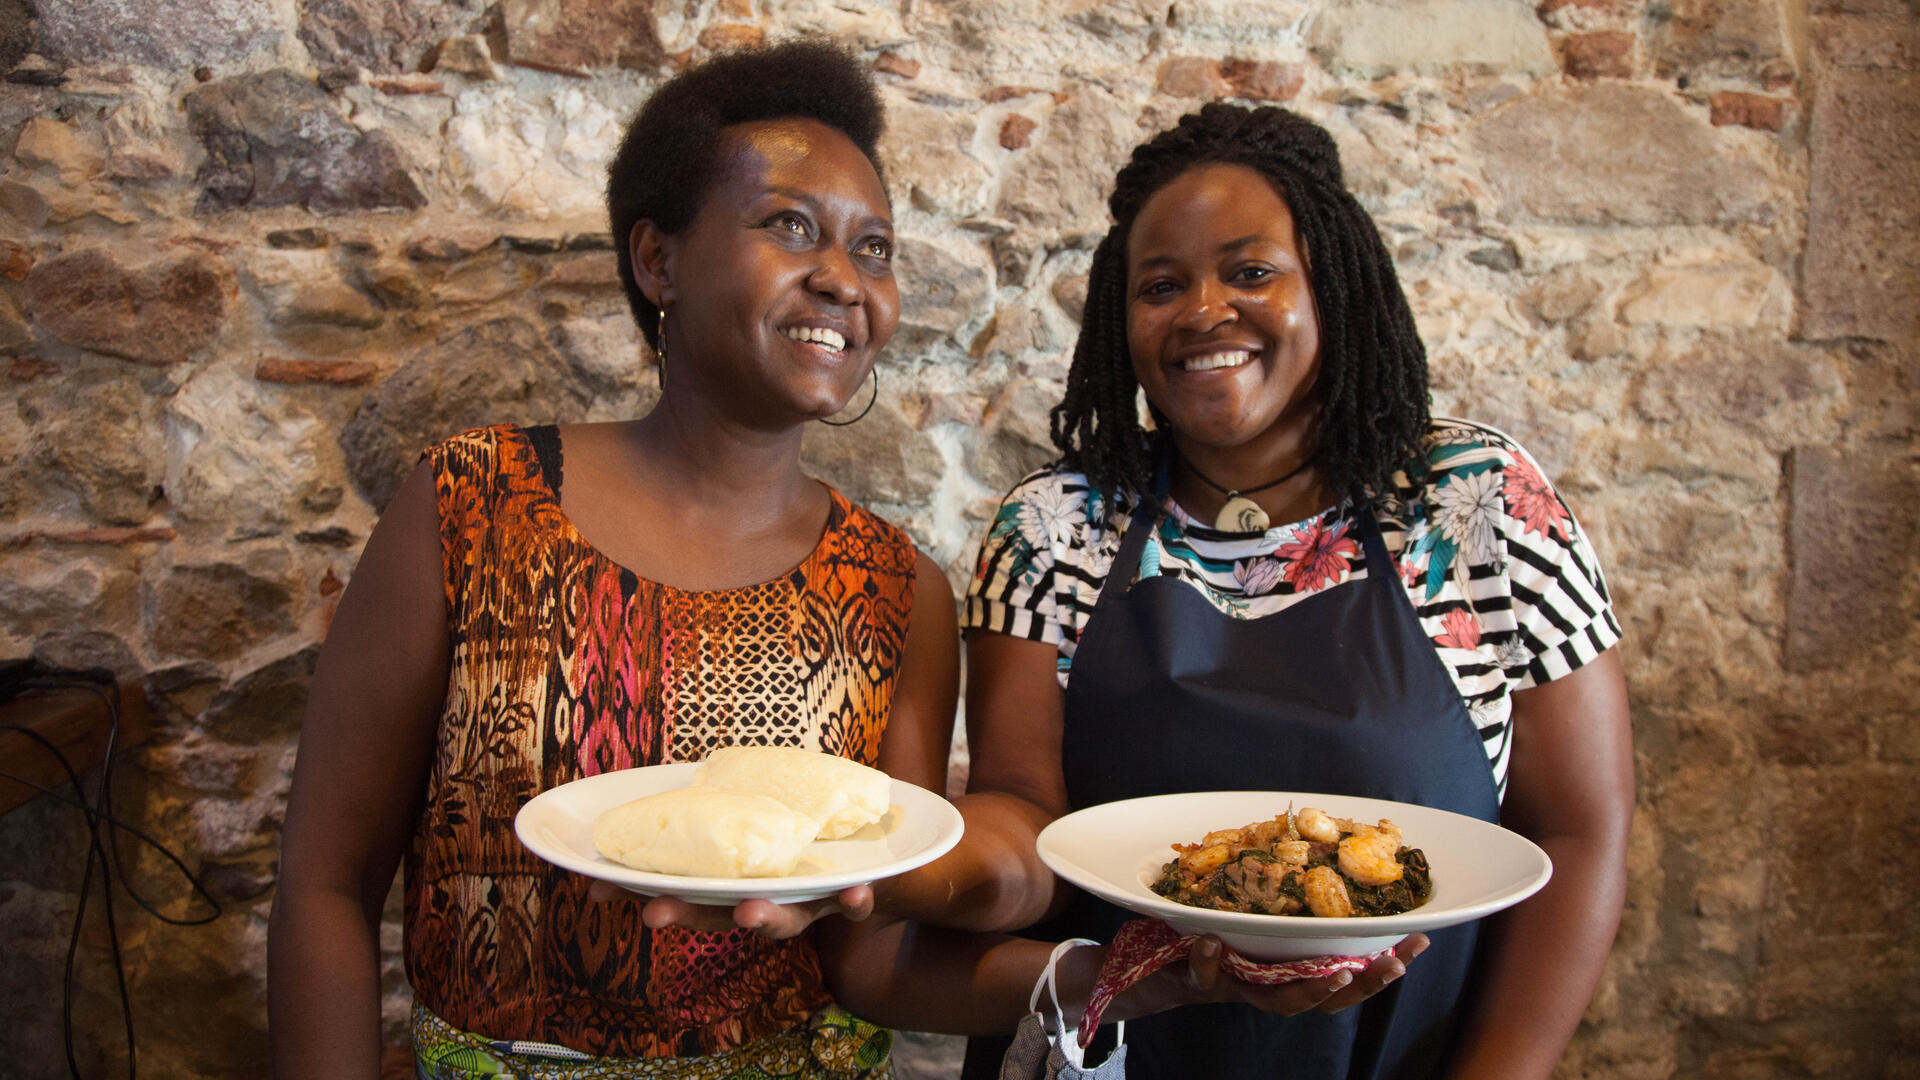 Two women smiling and holding plates of food.